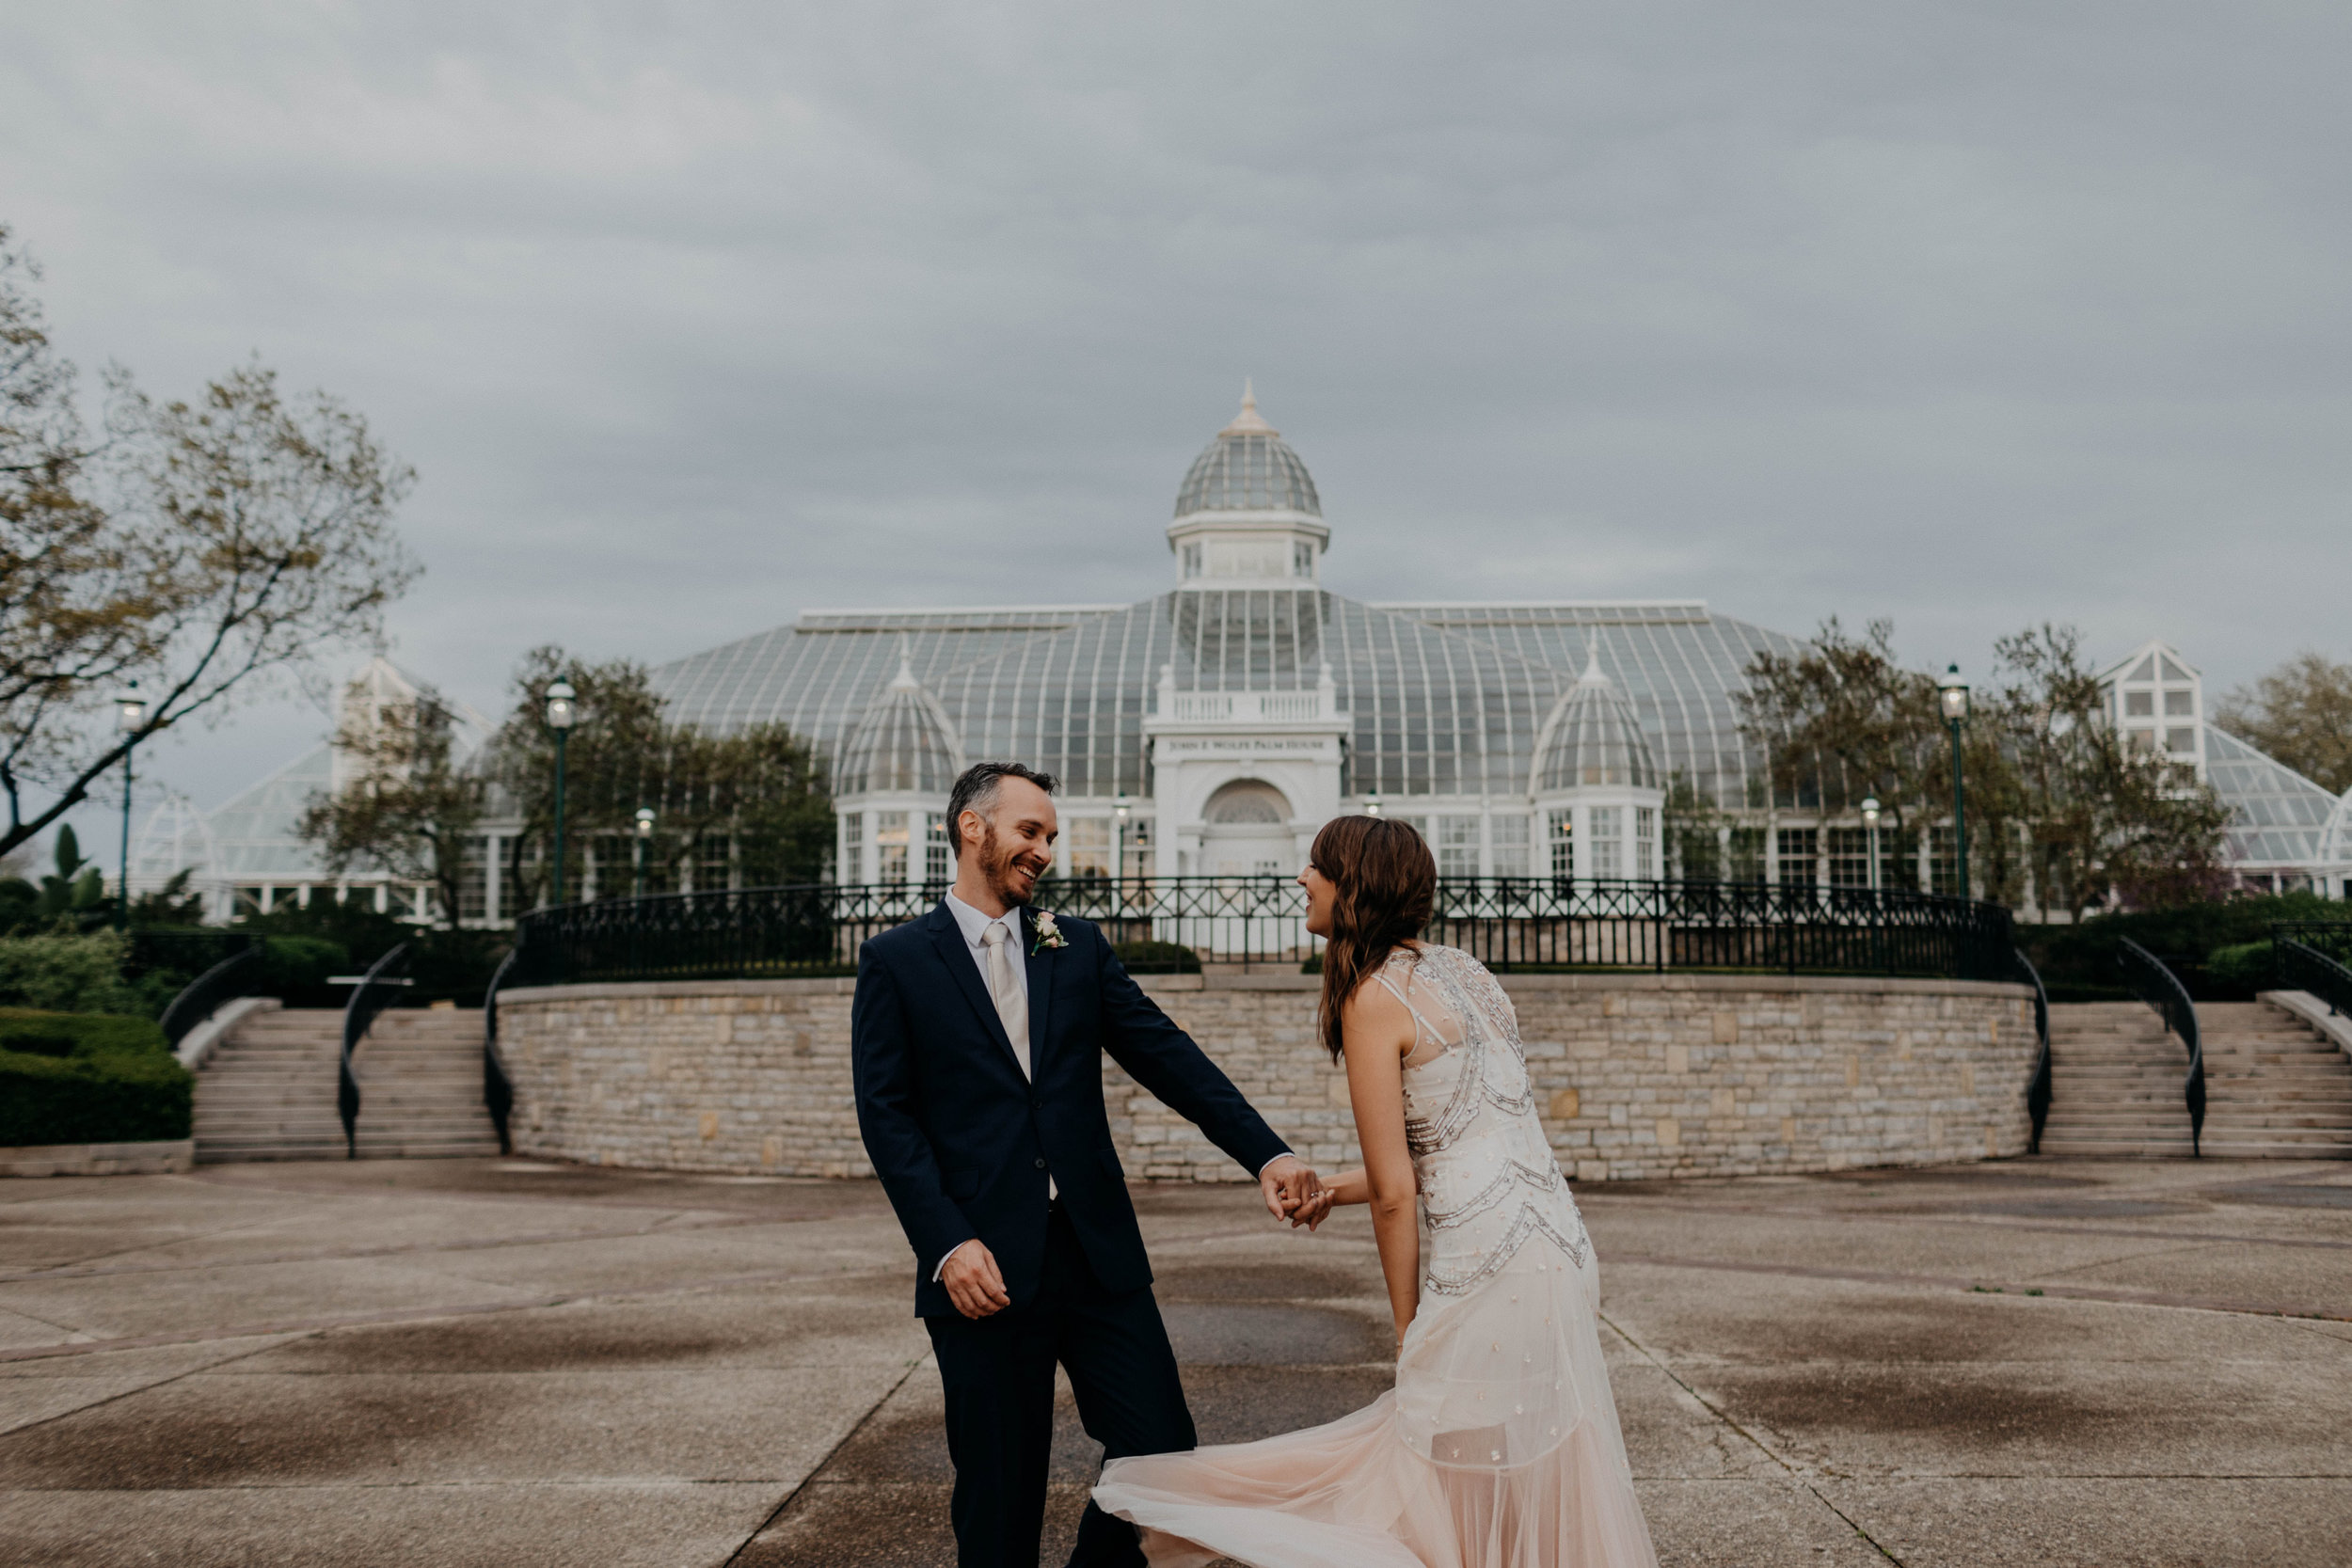 franklin park conservatory wedding columbus ohio wedding photographer grace e jones photography99.jpg